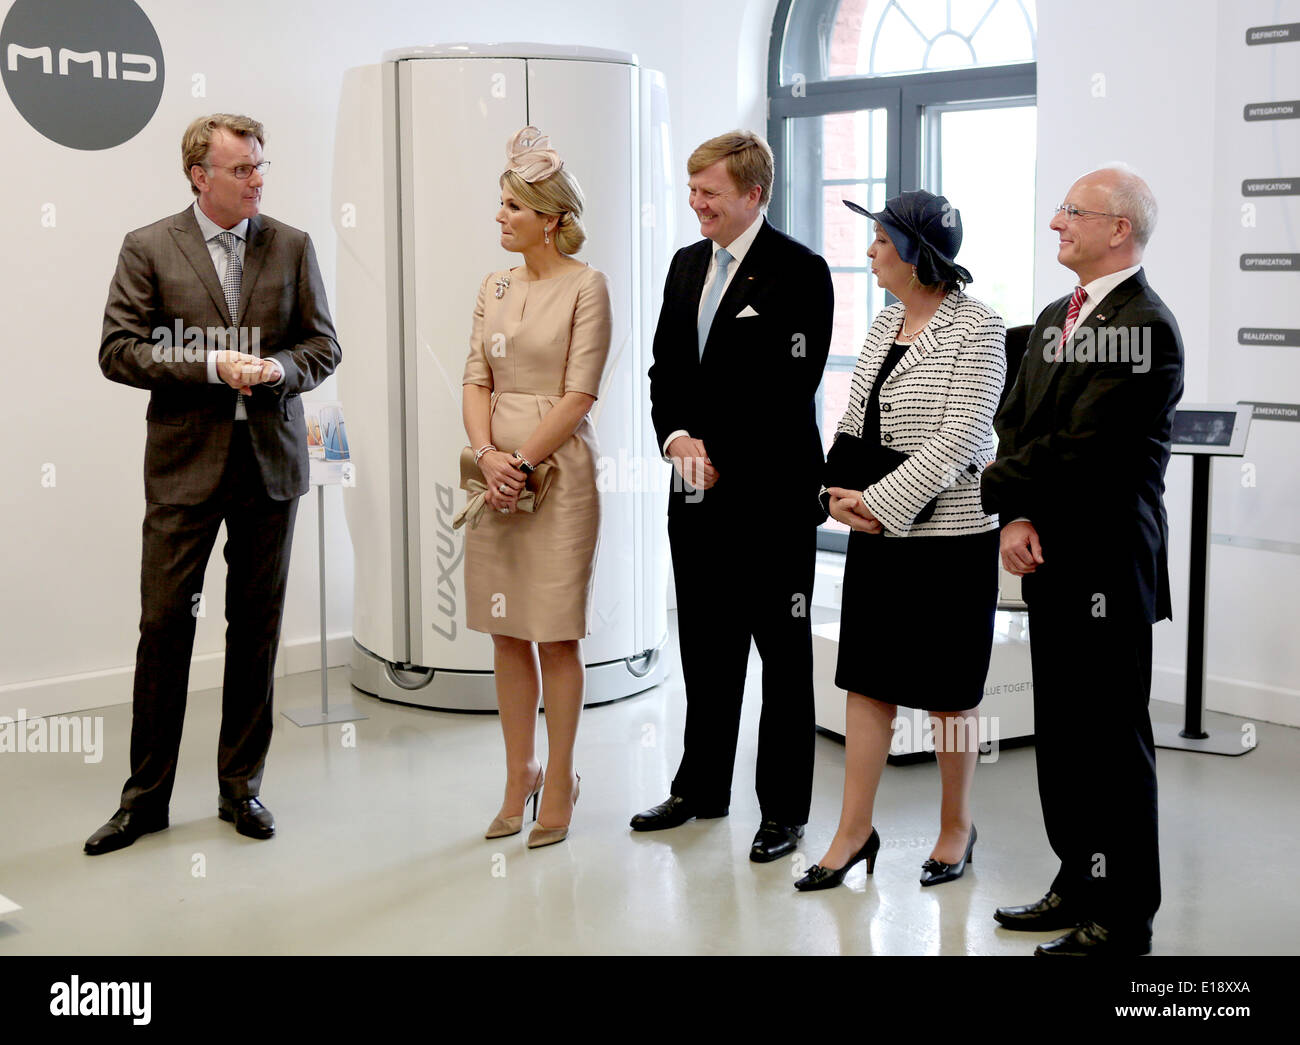 Essen, Germany. 27th May, 2014. The director of the Dutch-German MMID centre for creativity Marcel Magermans (L) welcomes Queen Maxima of the Netherlands (2nd L), King Willem-Alexander (C) and North Rhine-Westphalia's Premier Hannelore Kraft in Essen, Germany, 27 May 2014. The attending man (R) is not identified. The Dutch royal couple is on a two-day visit to Germany. Photo: Oliver Berg/dpa/Alamy Live News - Stock Image